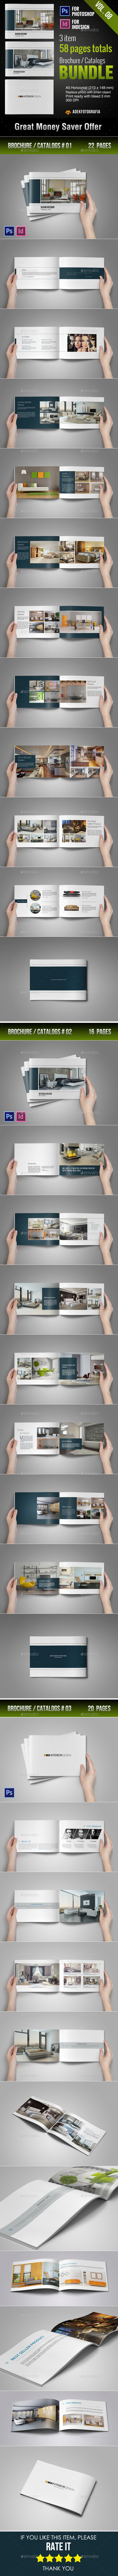 Multipurpose Catalogs / Brochure Bundle Template - Catalogs Brochures